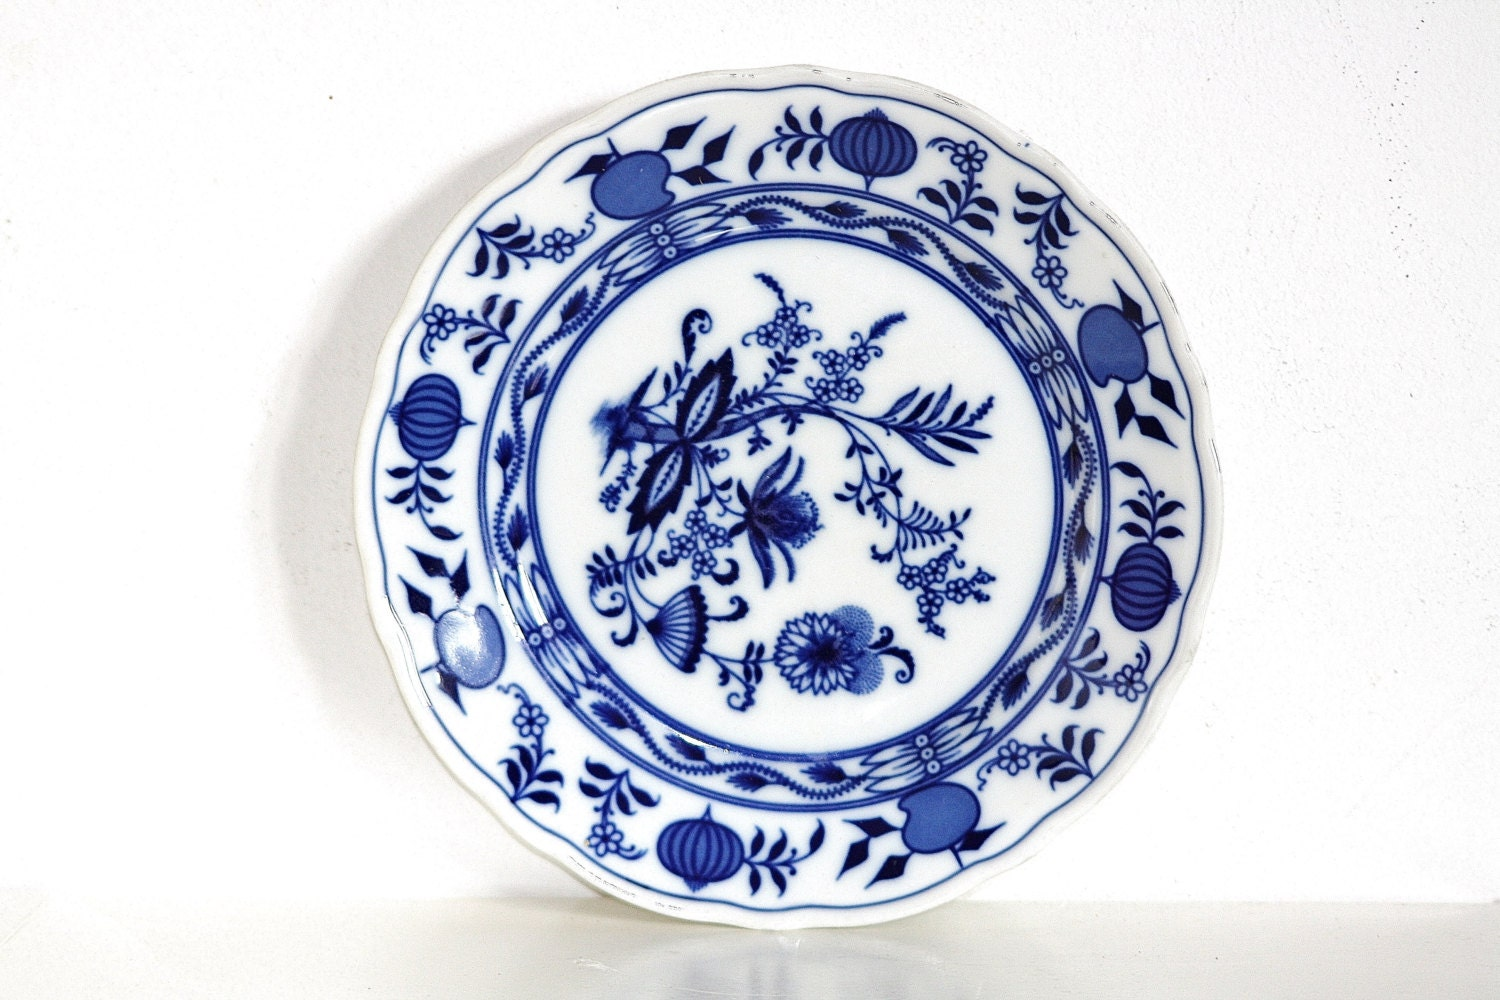 Bavaria Plate, Blue Plate, Zwiebelmuster Plate, 100 years Old Plate ...